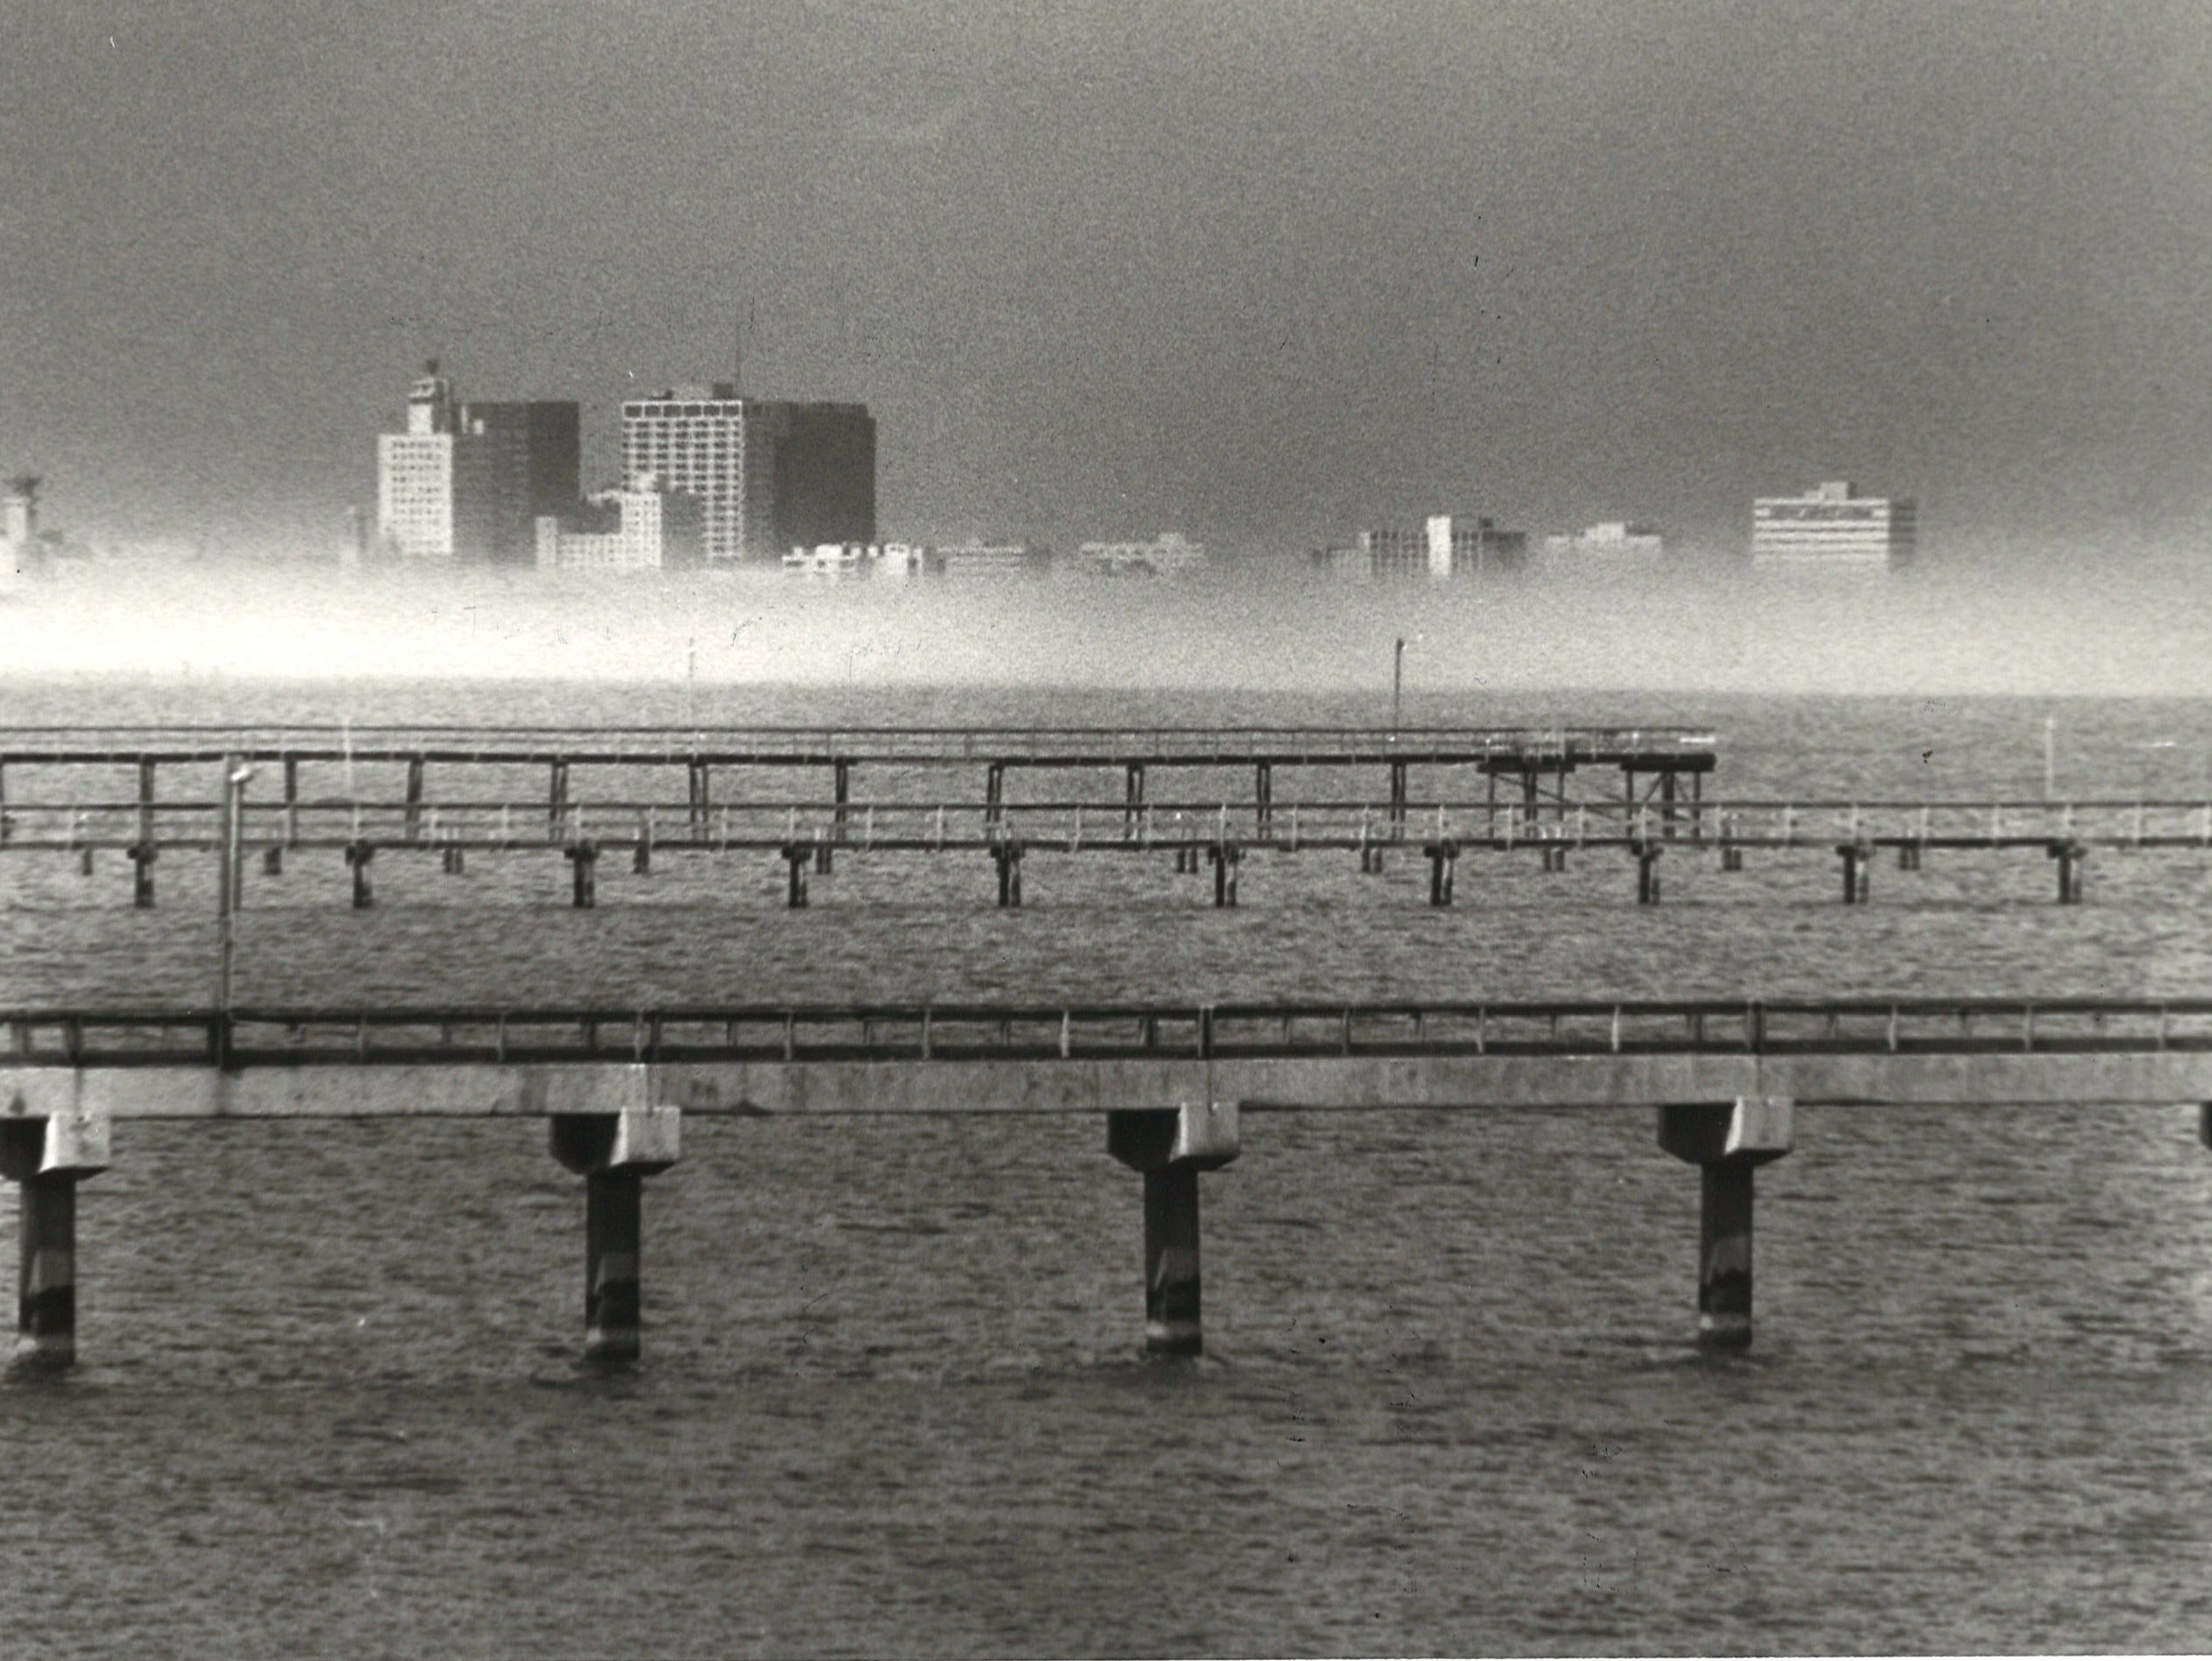 Fog on Corpus Christi Bay blocks the view of downtown on Jan. 17, 1979.